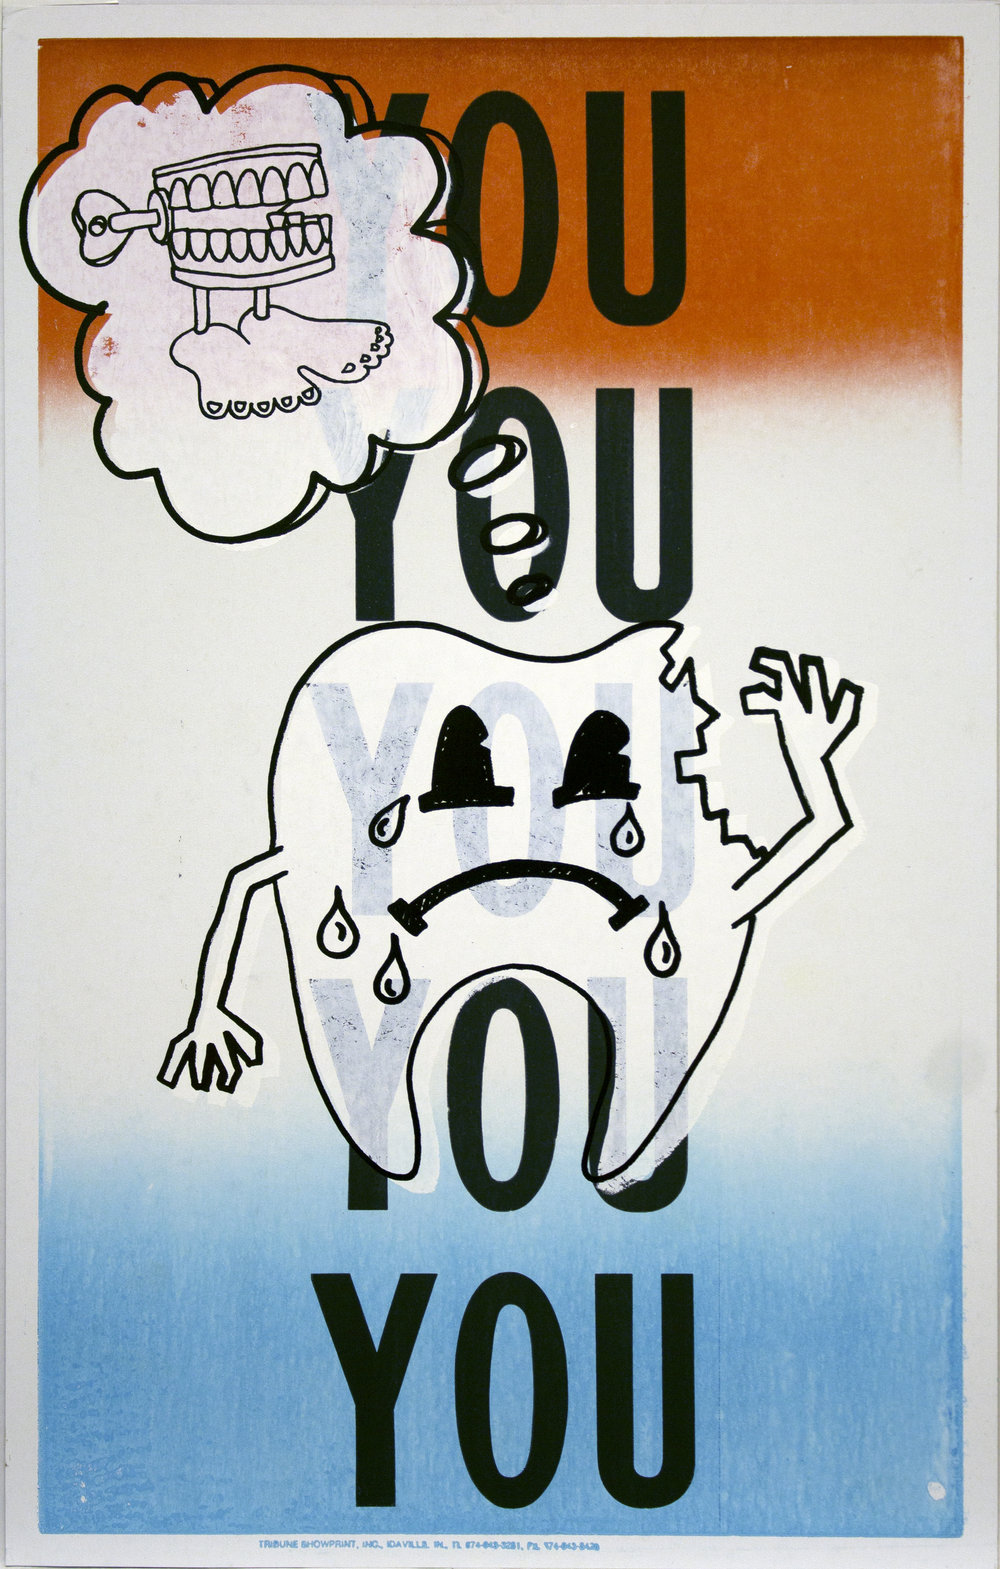 Christopher Michlig and Jan Tumlir,  Fairy Tales for the Teeth (YOU YOU YOU YOU YOU) , 2017. Silkscreen and letterpress on poster board, 14 x 22 inches